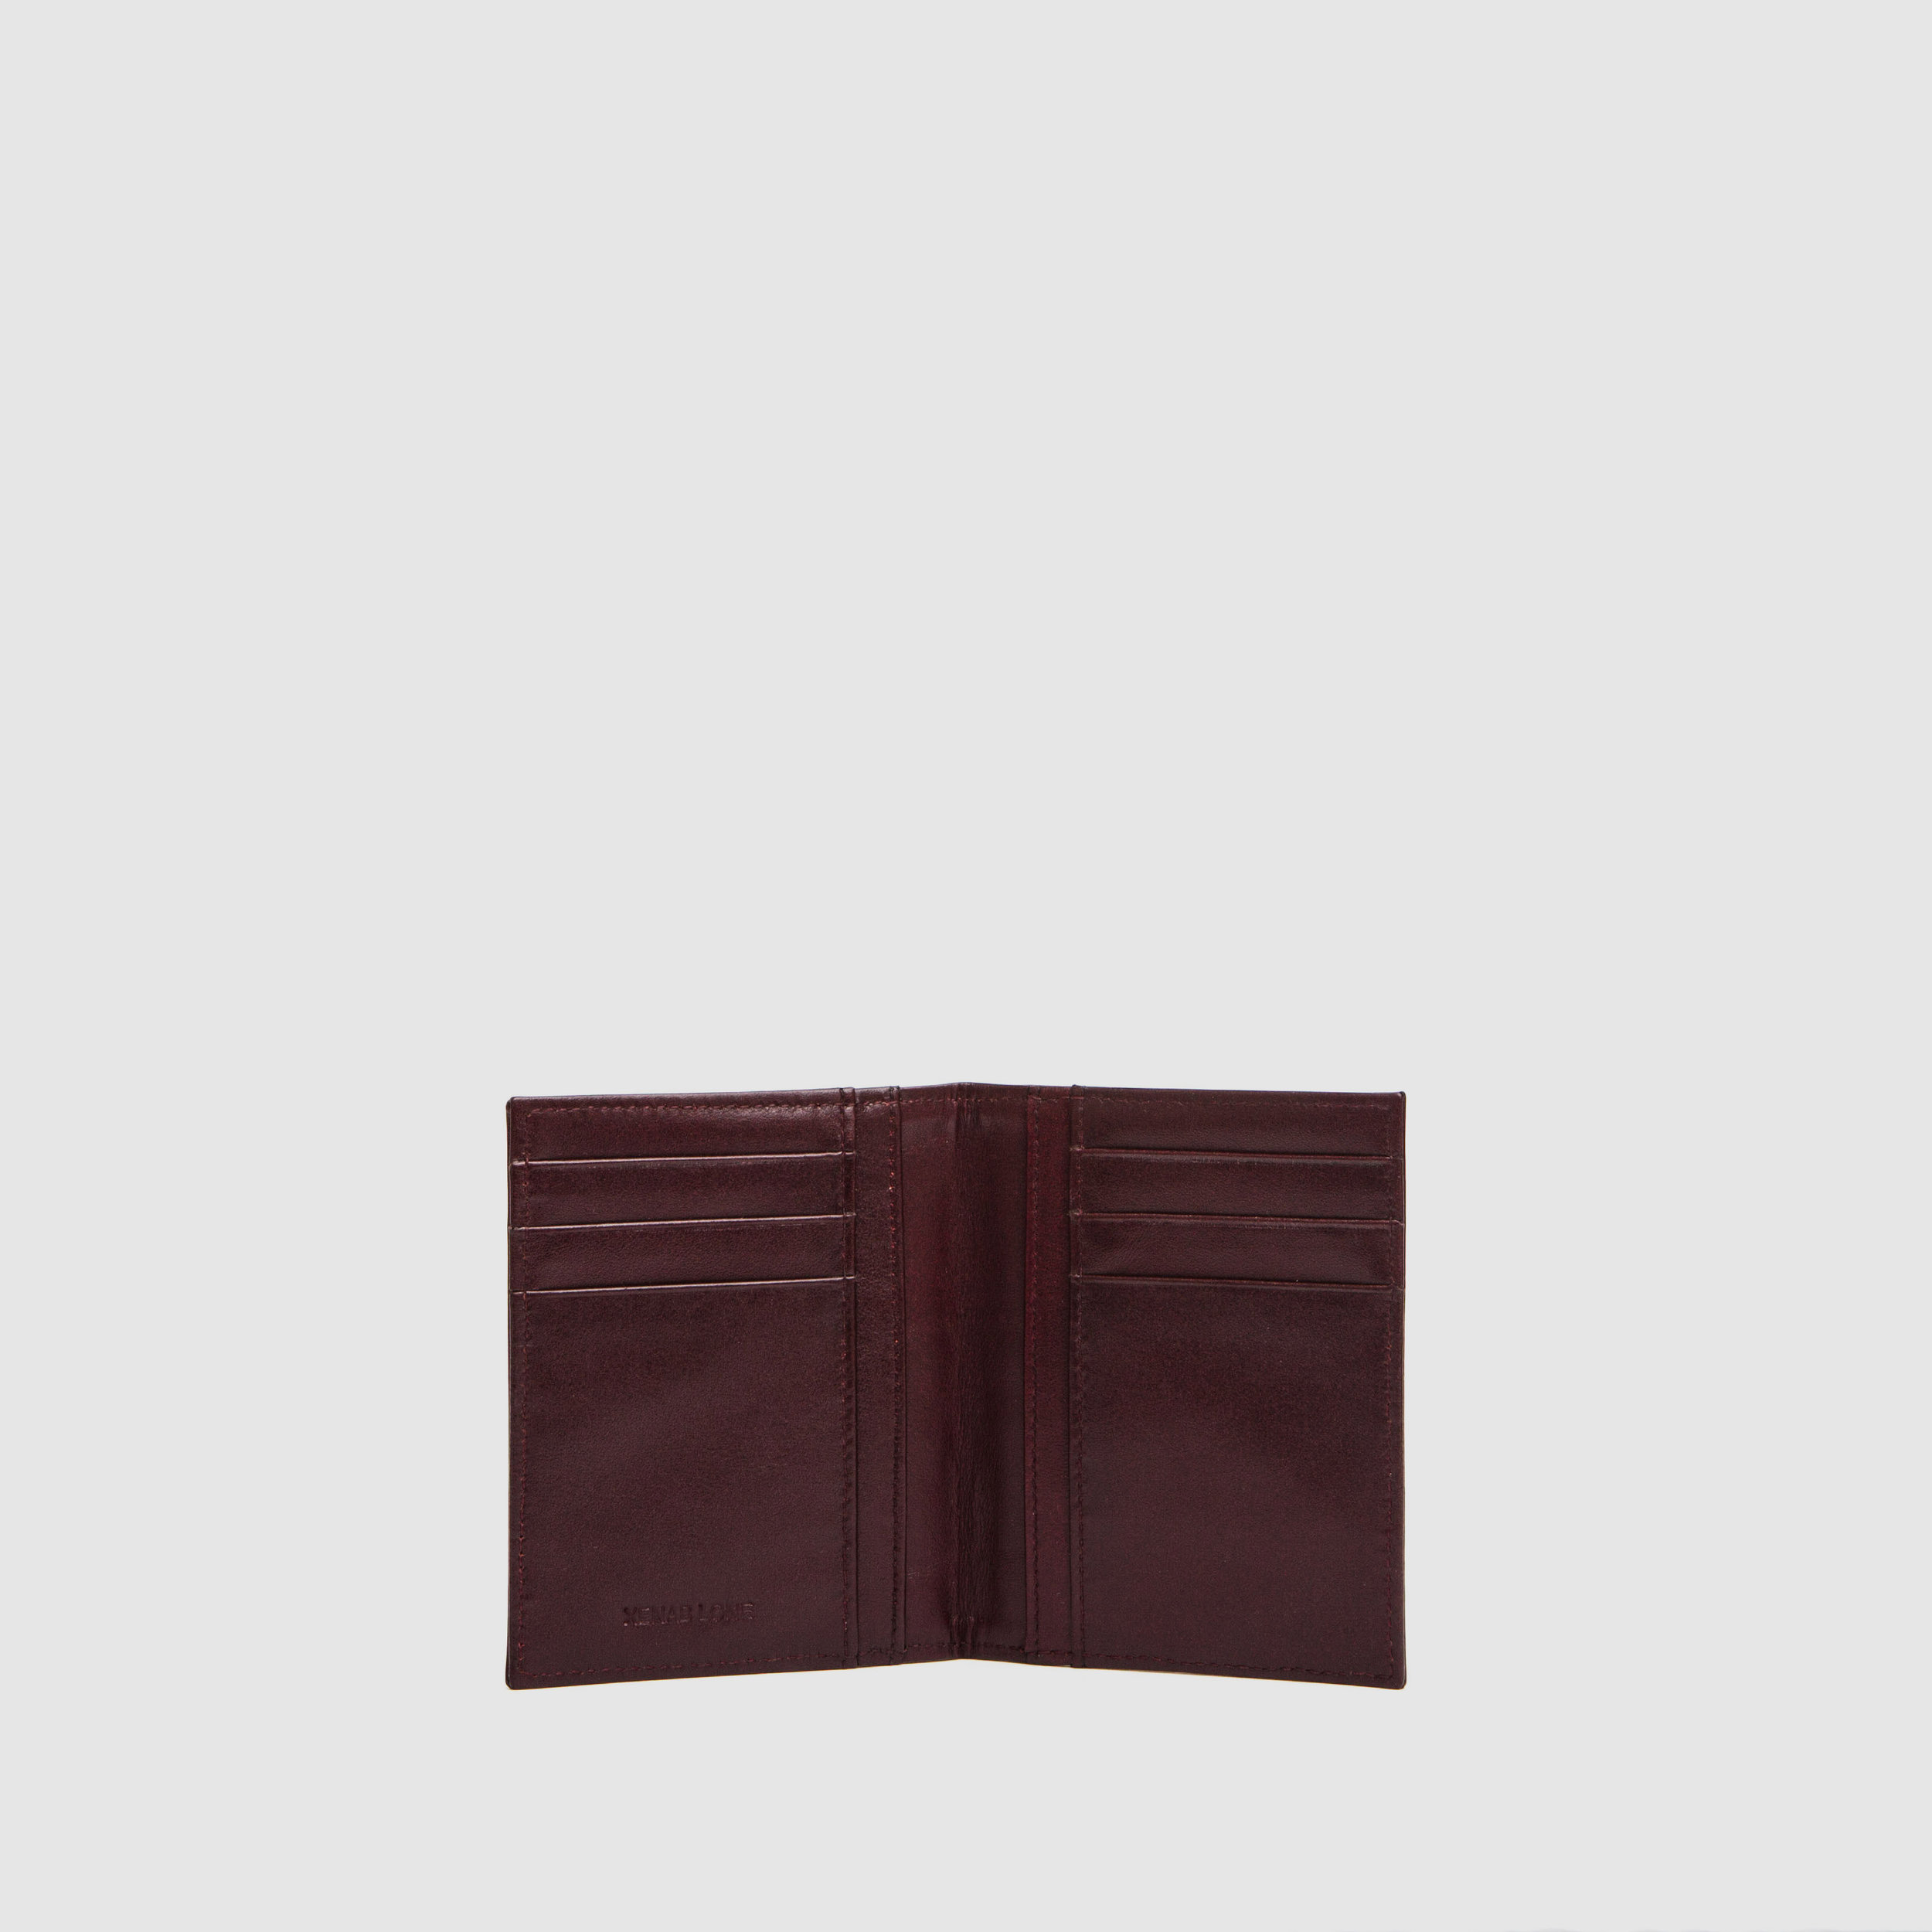 Wallets&Pouches_0001s_0001s_0001_Layer 33.jpg